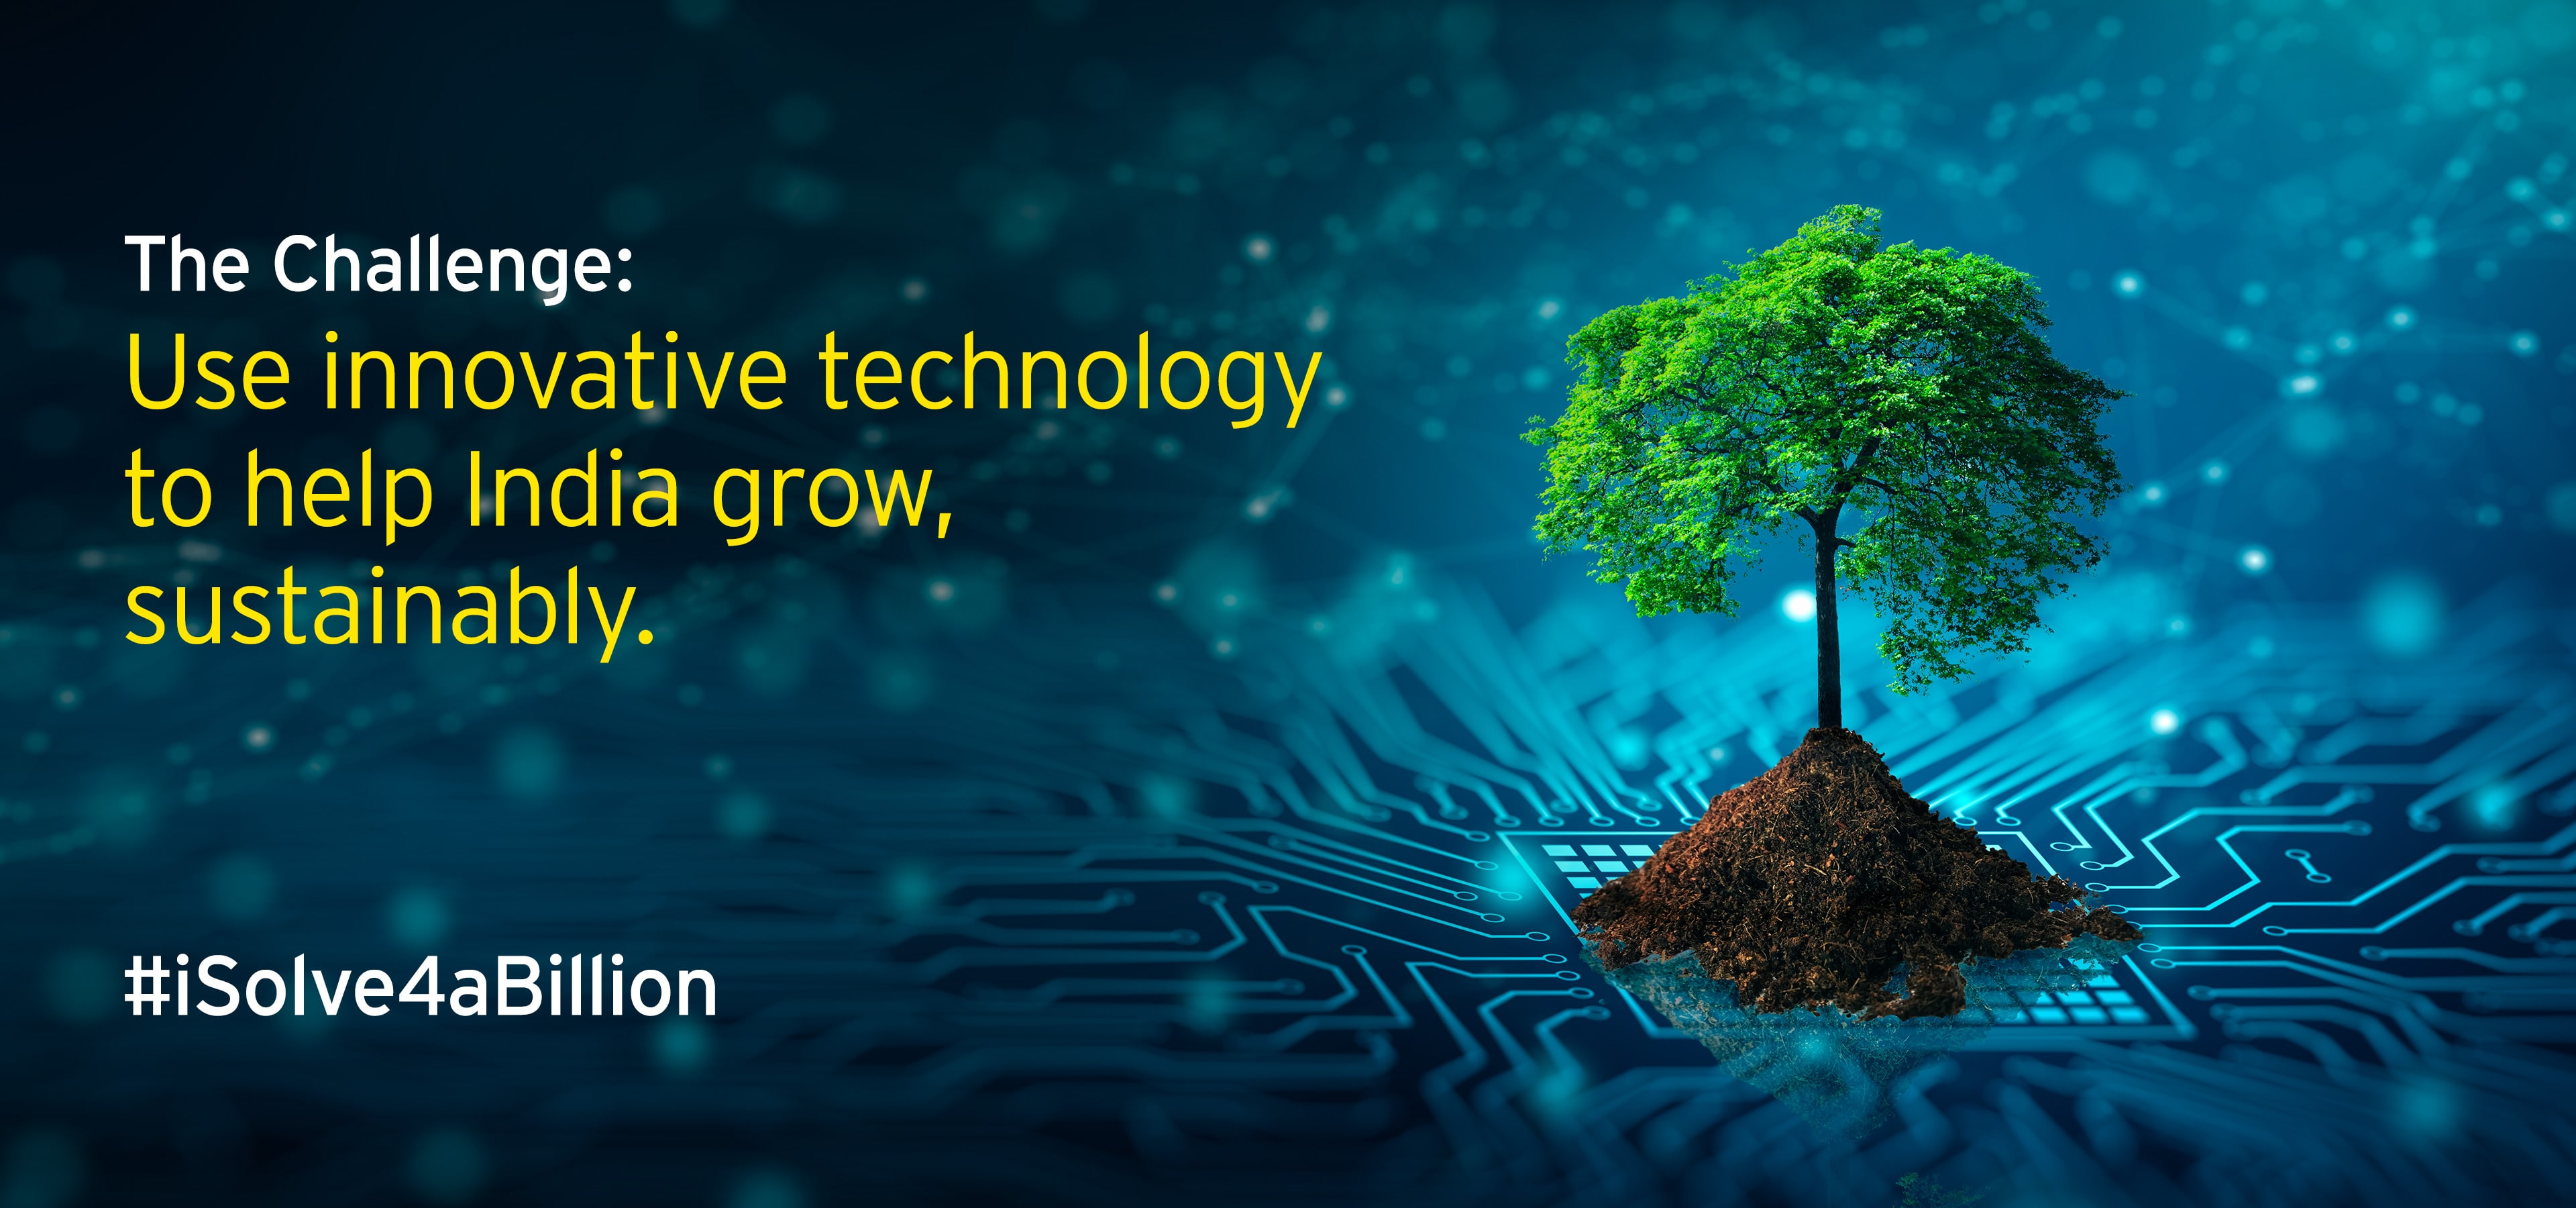 Challenge: Use innovative technology to help India grow, sustainably